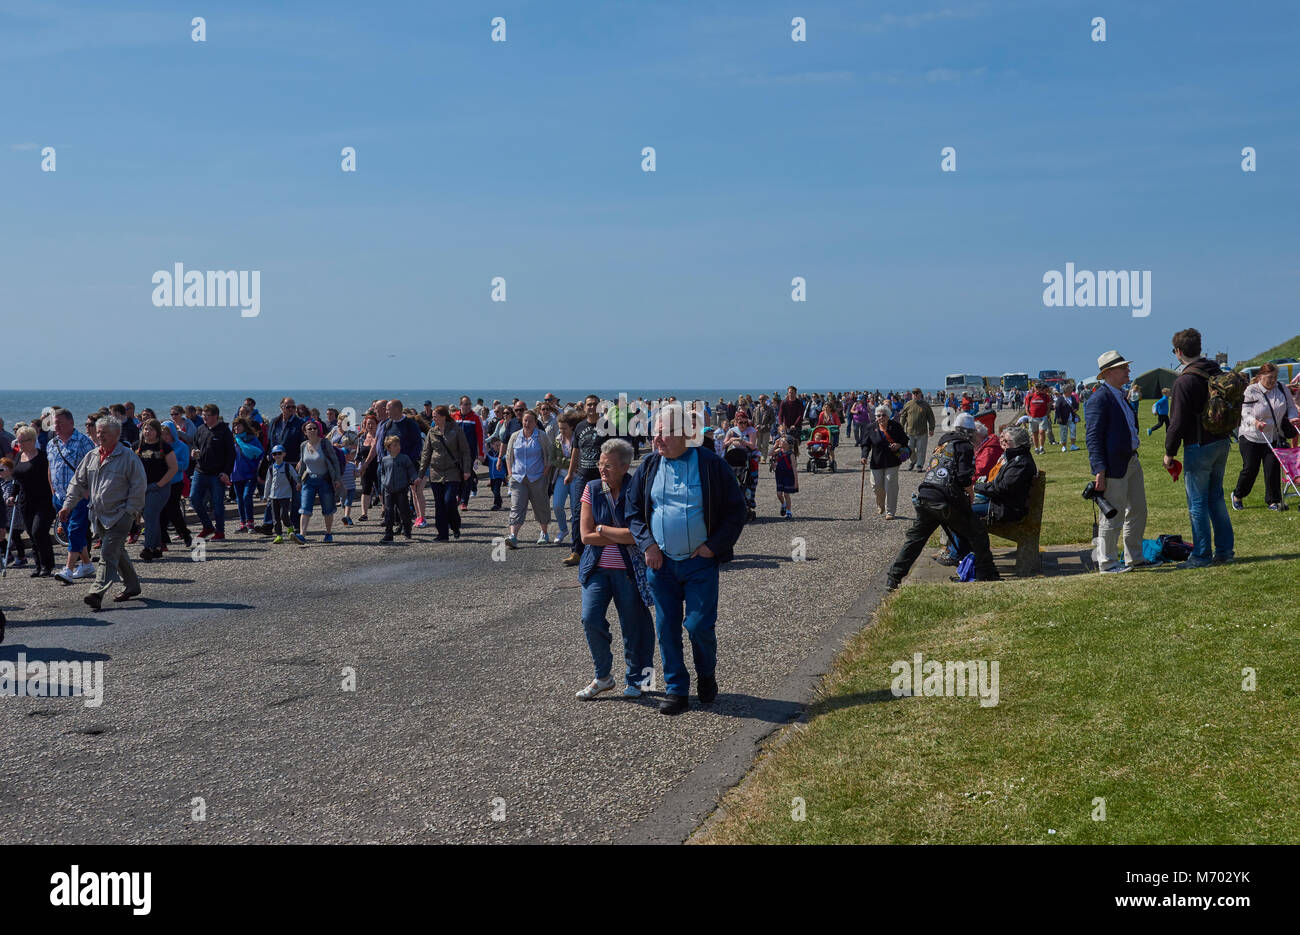 The Crowds follow the Marching bands and parade at a Public event honouring local heroes in Arbroath, Scotland. - Stock Image